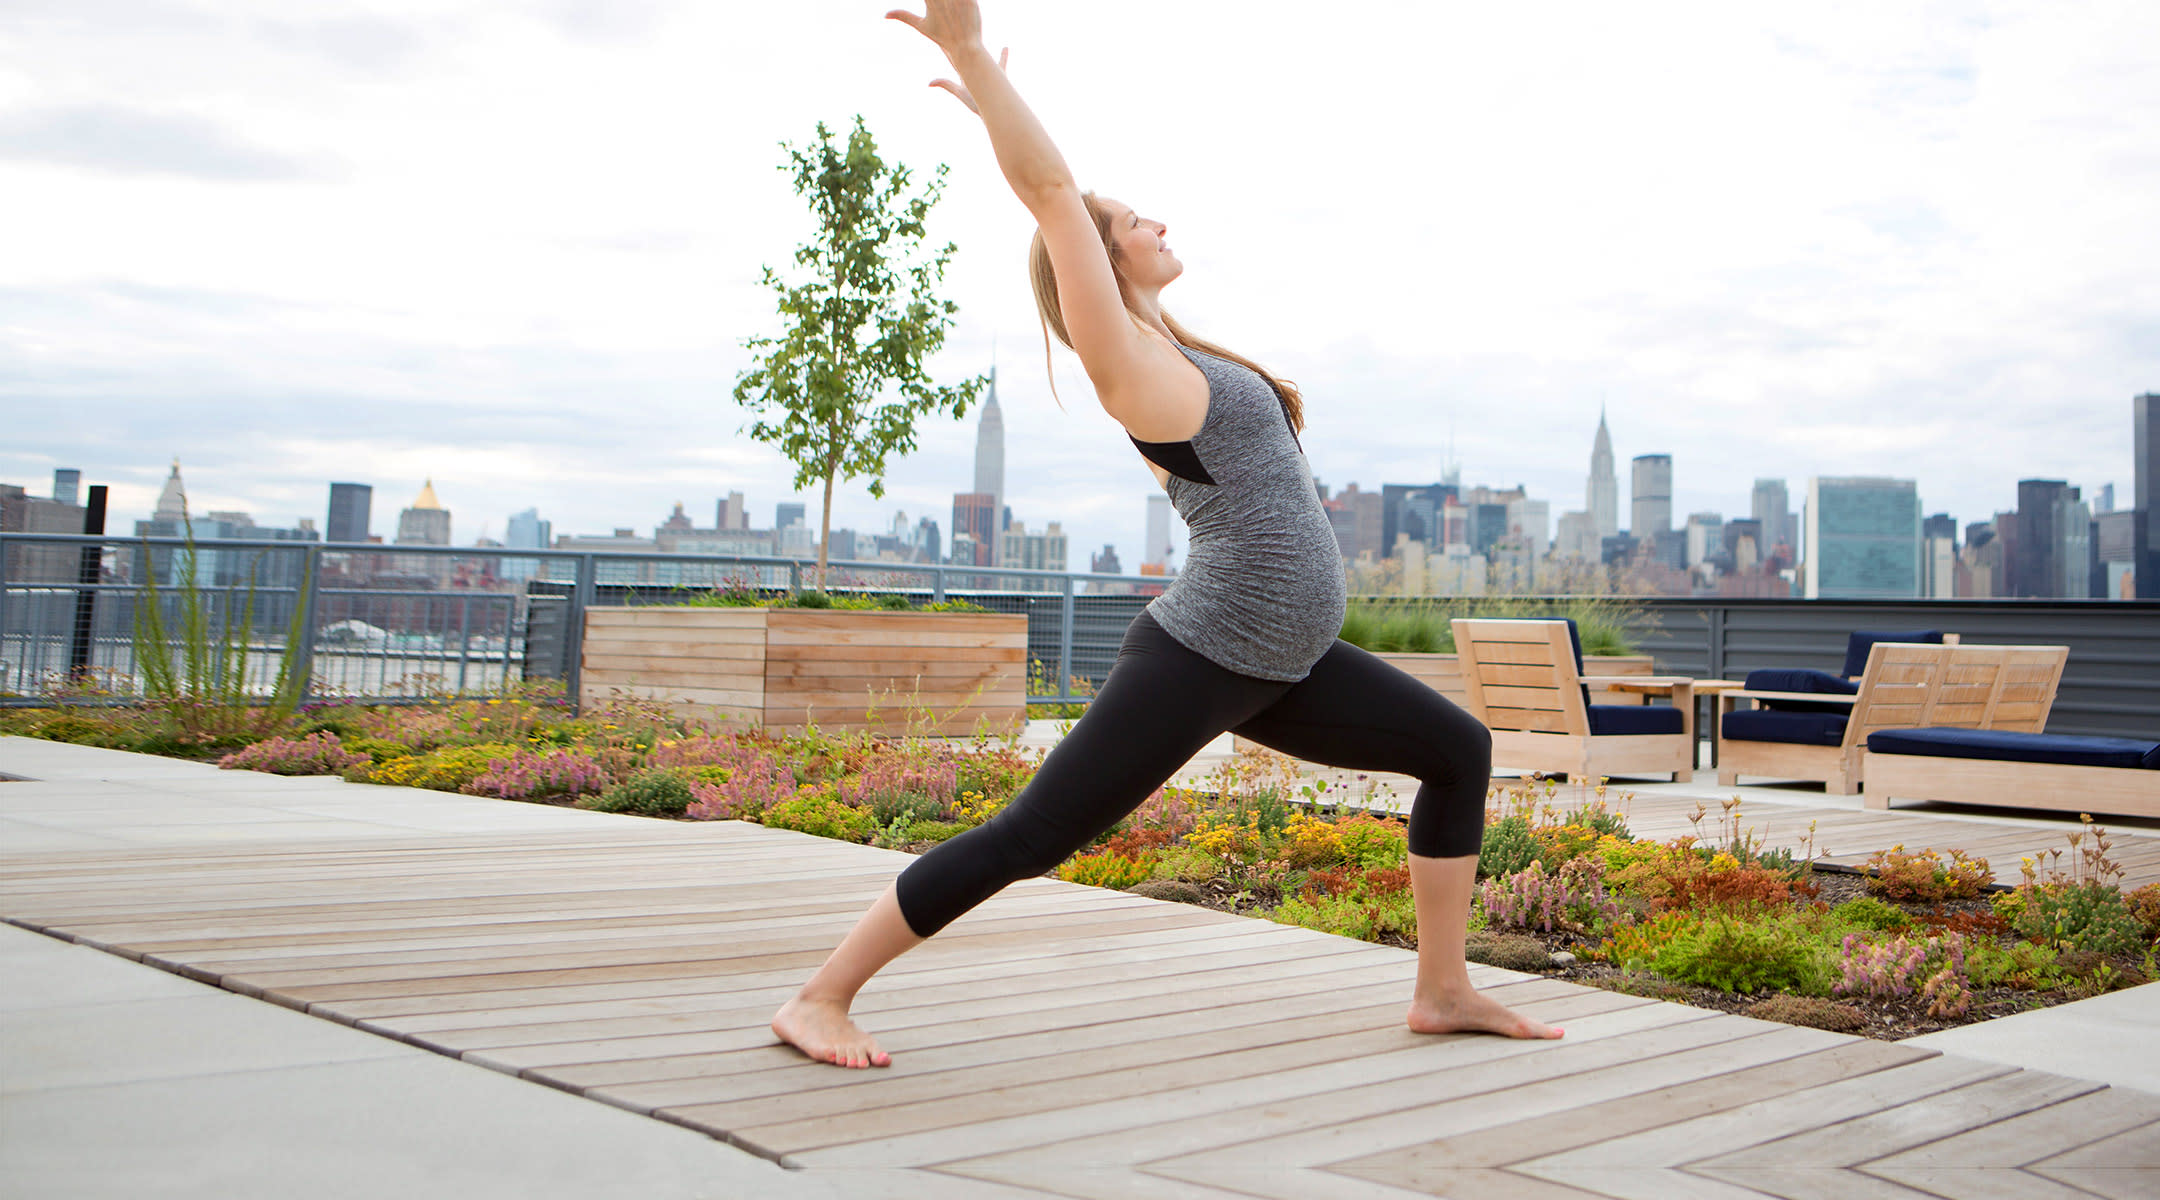 pregnant woman exercise yoga rooftop